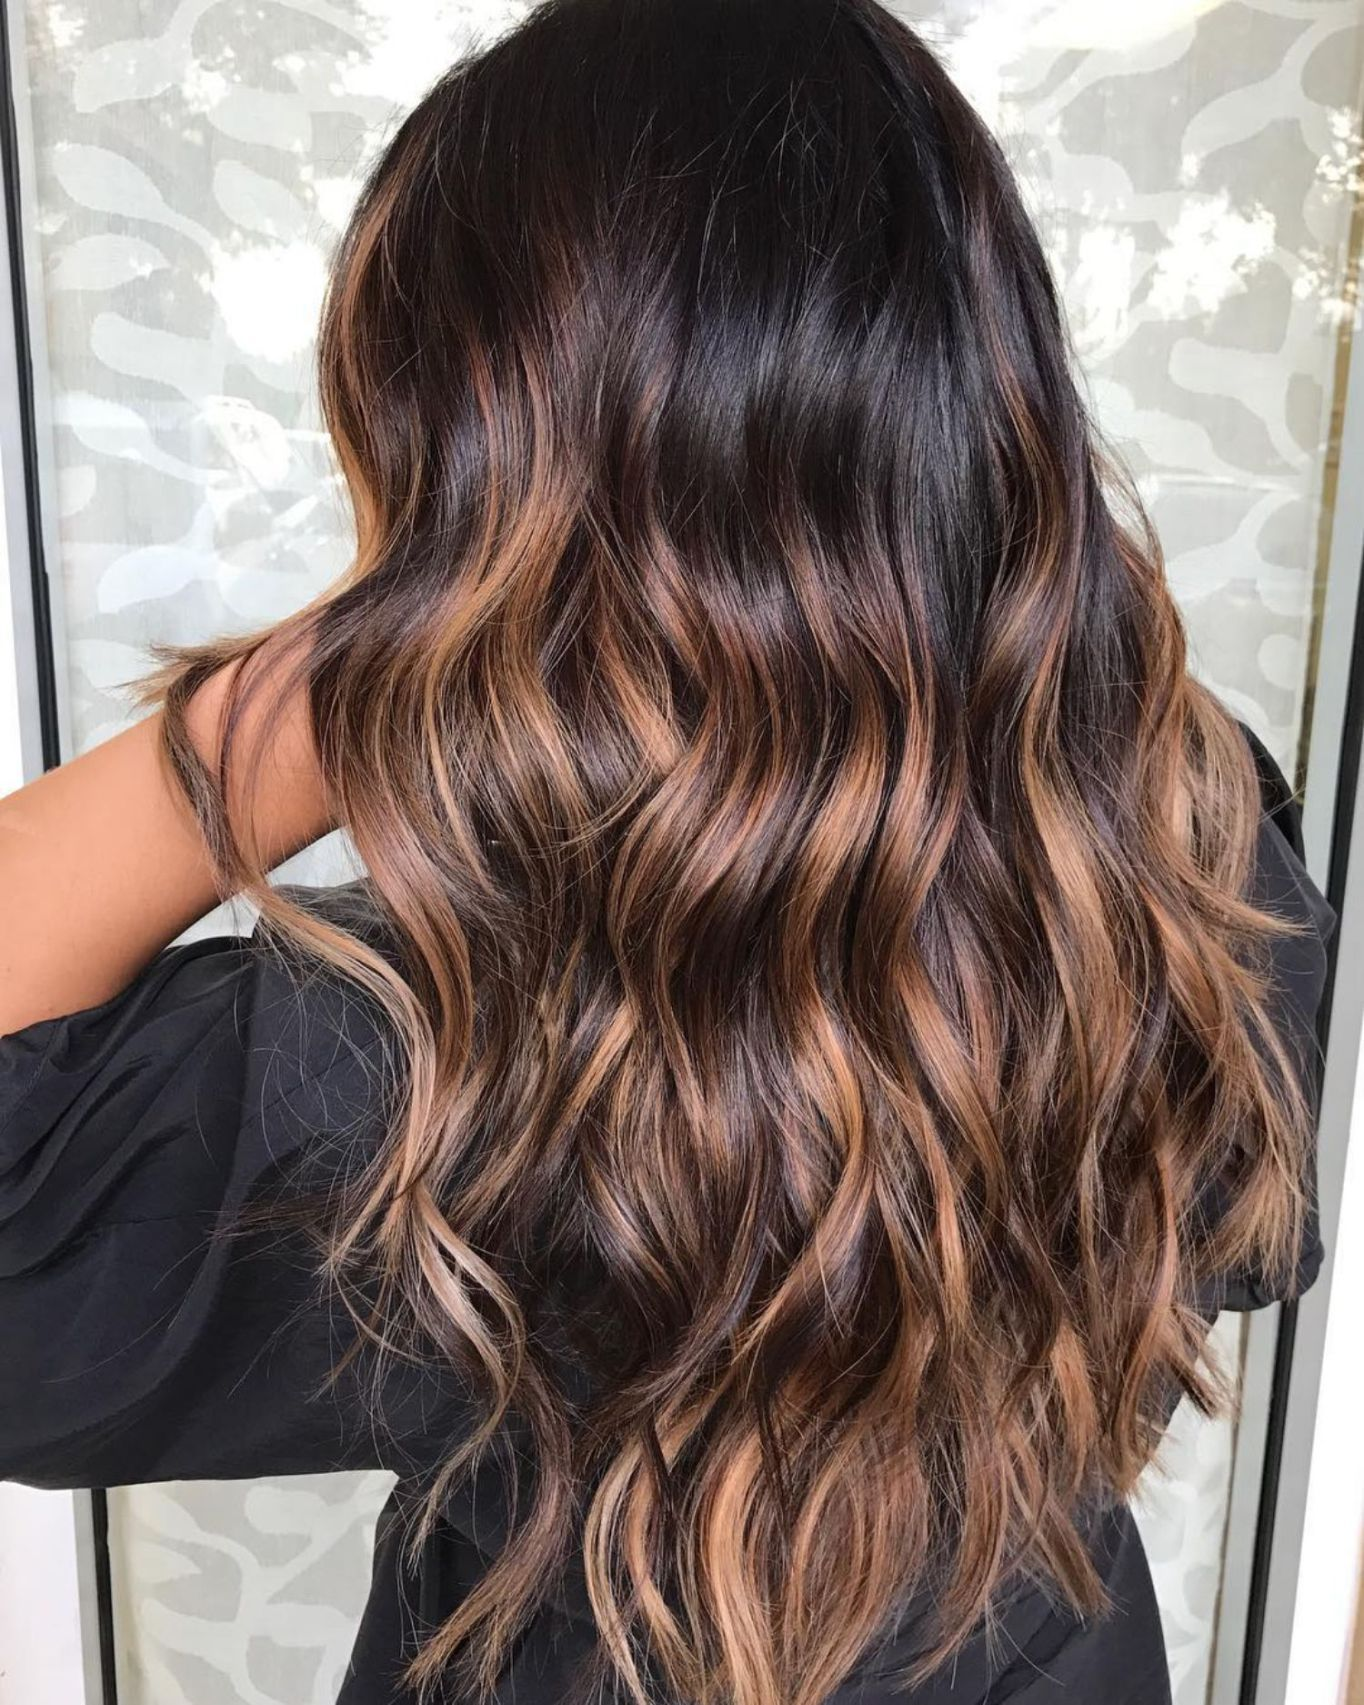 Hairstyles 10 Chocolate Brown Hair Color Ideas For Brunettes Cute